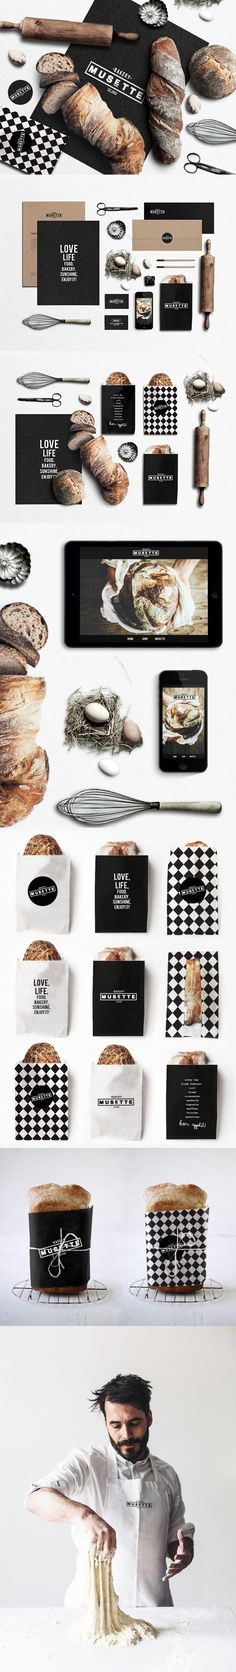 Musette bakery Identity, packaging, branding. Boy do I want some of this bread…